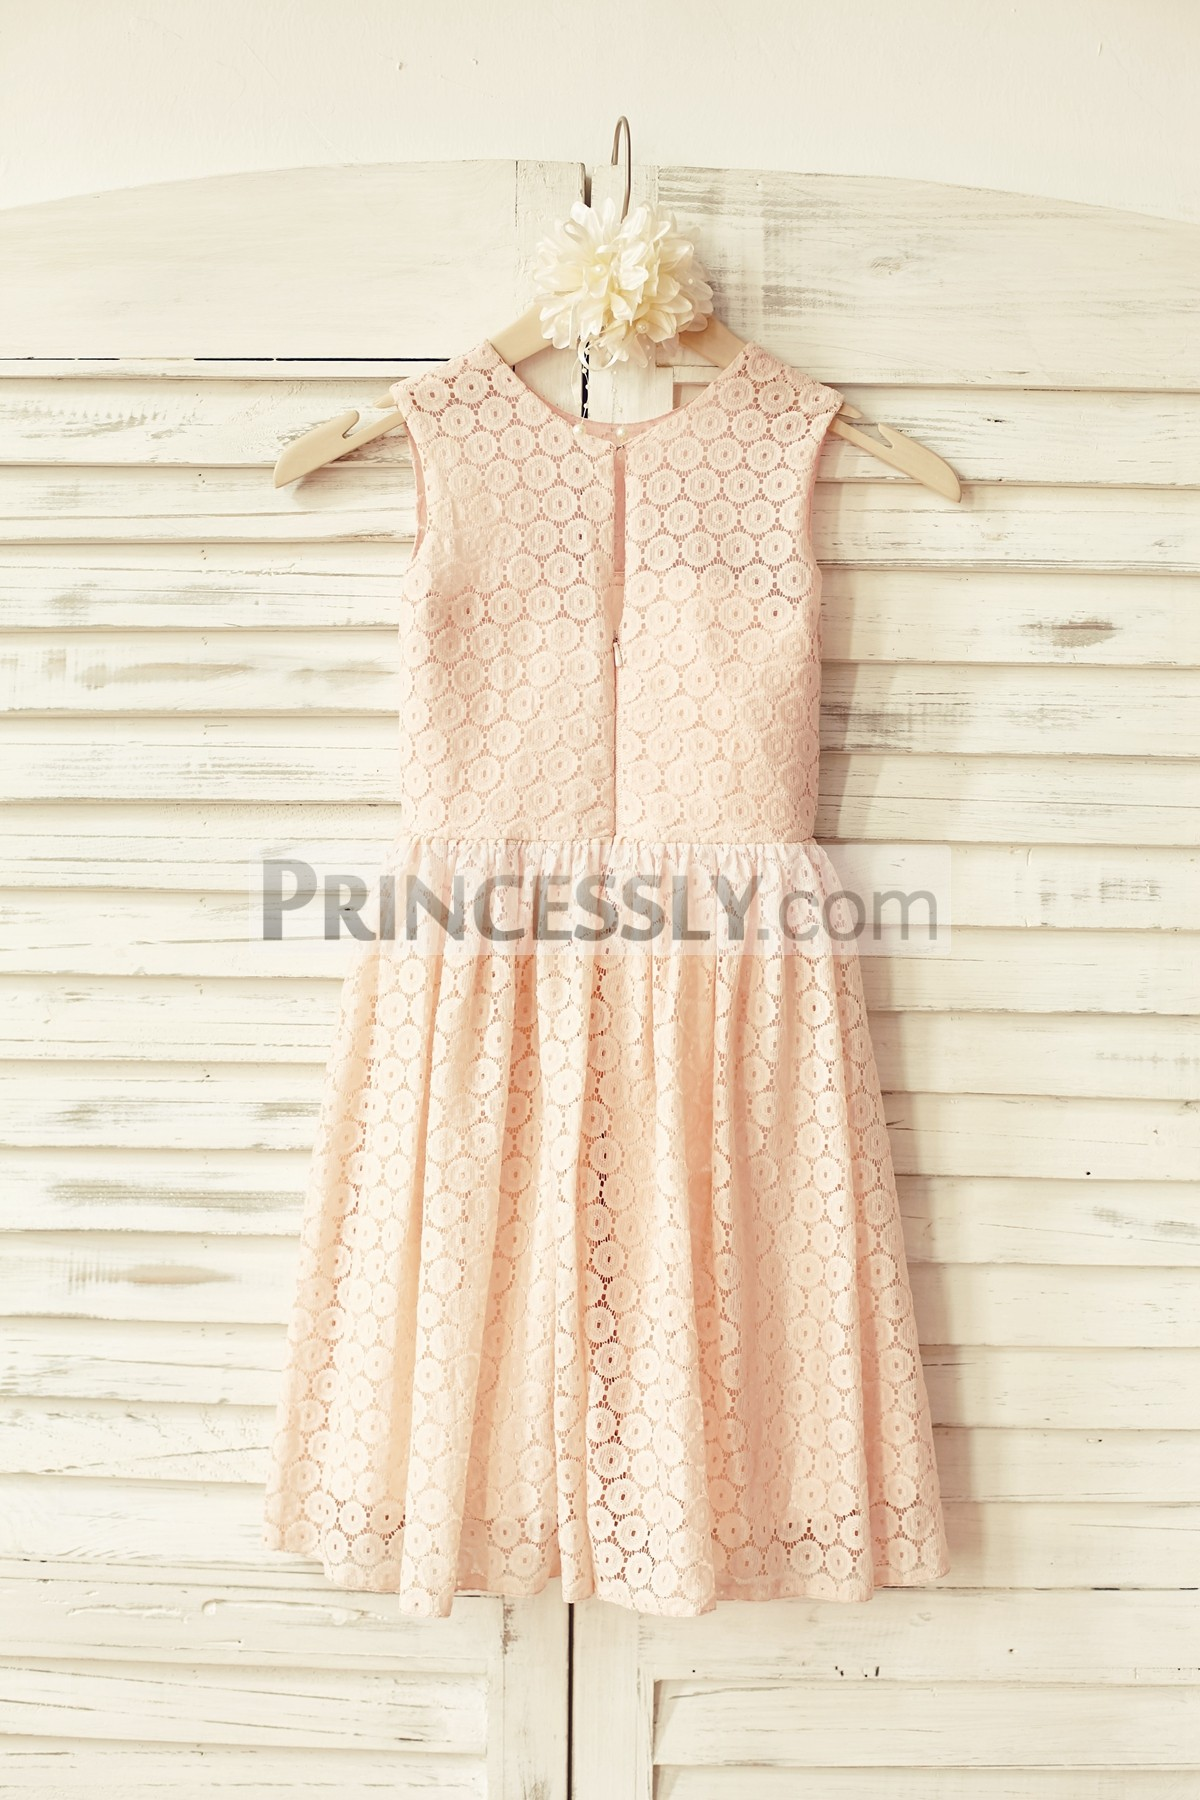 Scoop neck sleeveless blush pink lace wedding baby girl dress